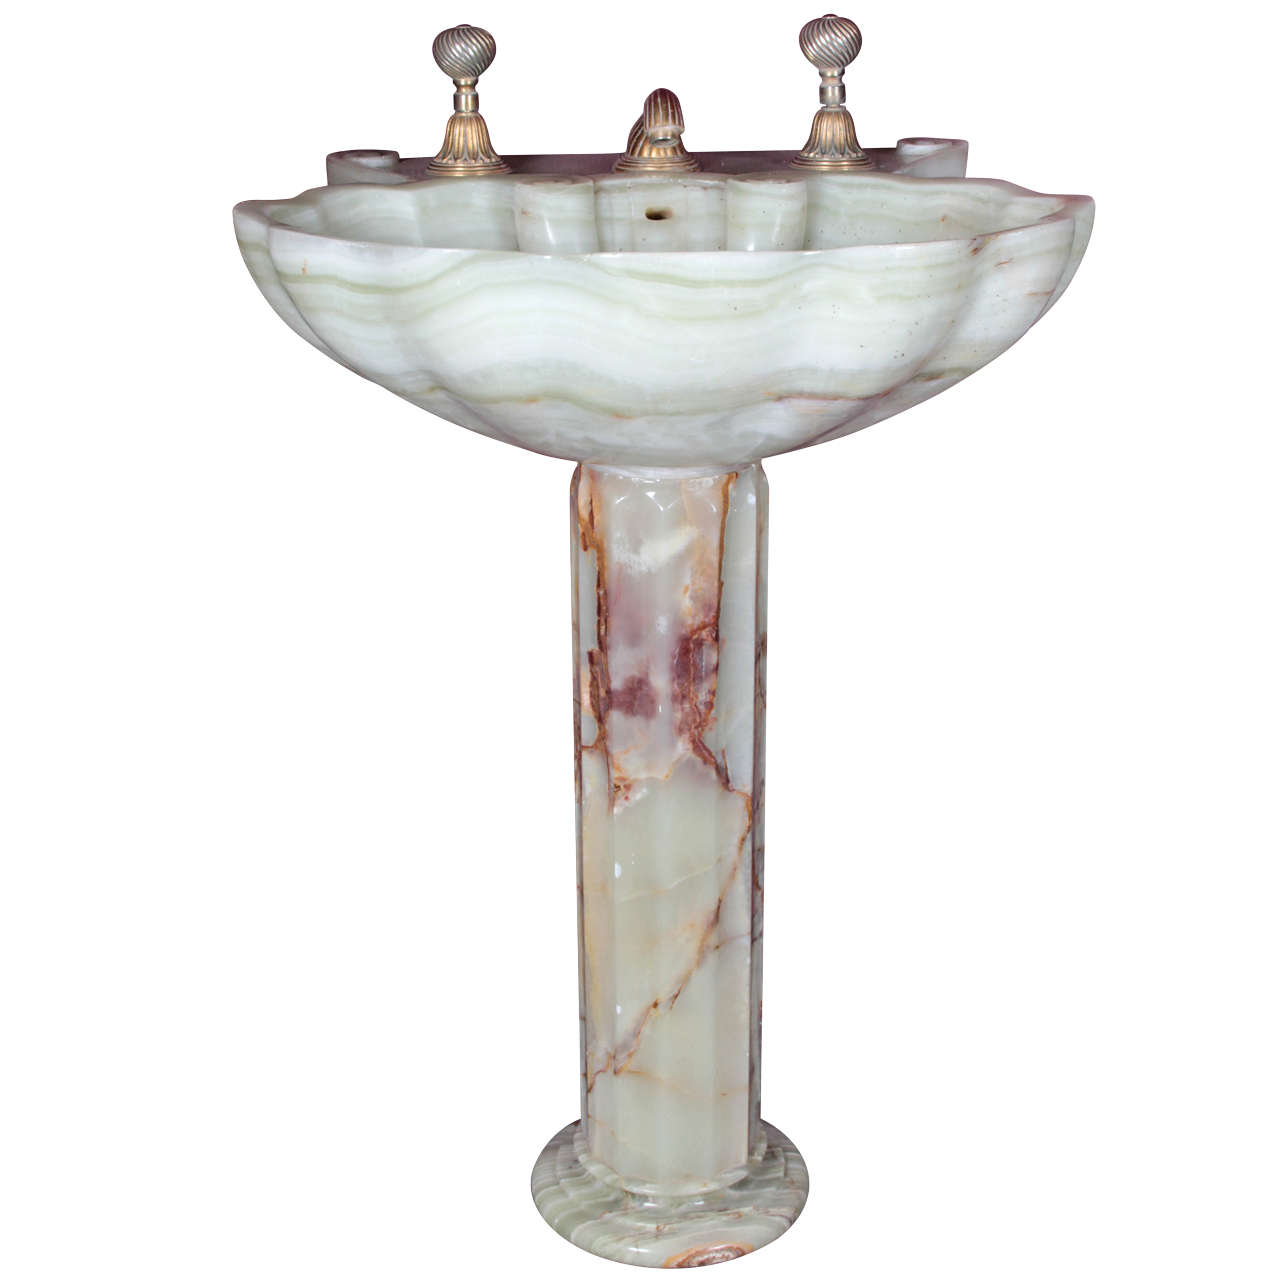 Sherle Wagner Onyx Sink At 1stdibs